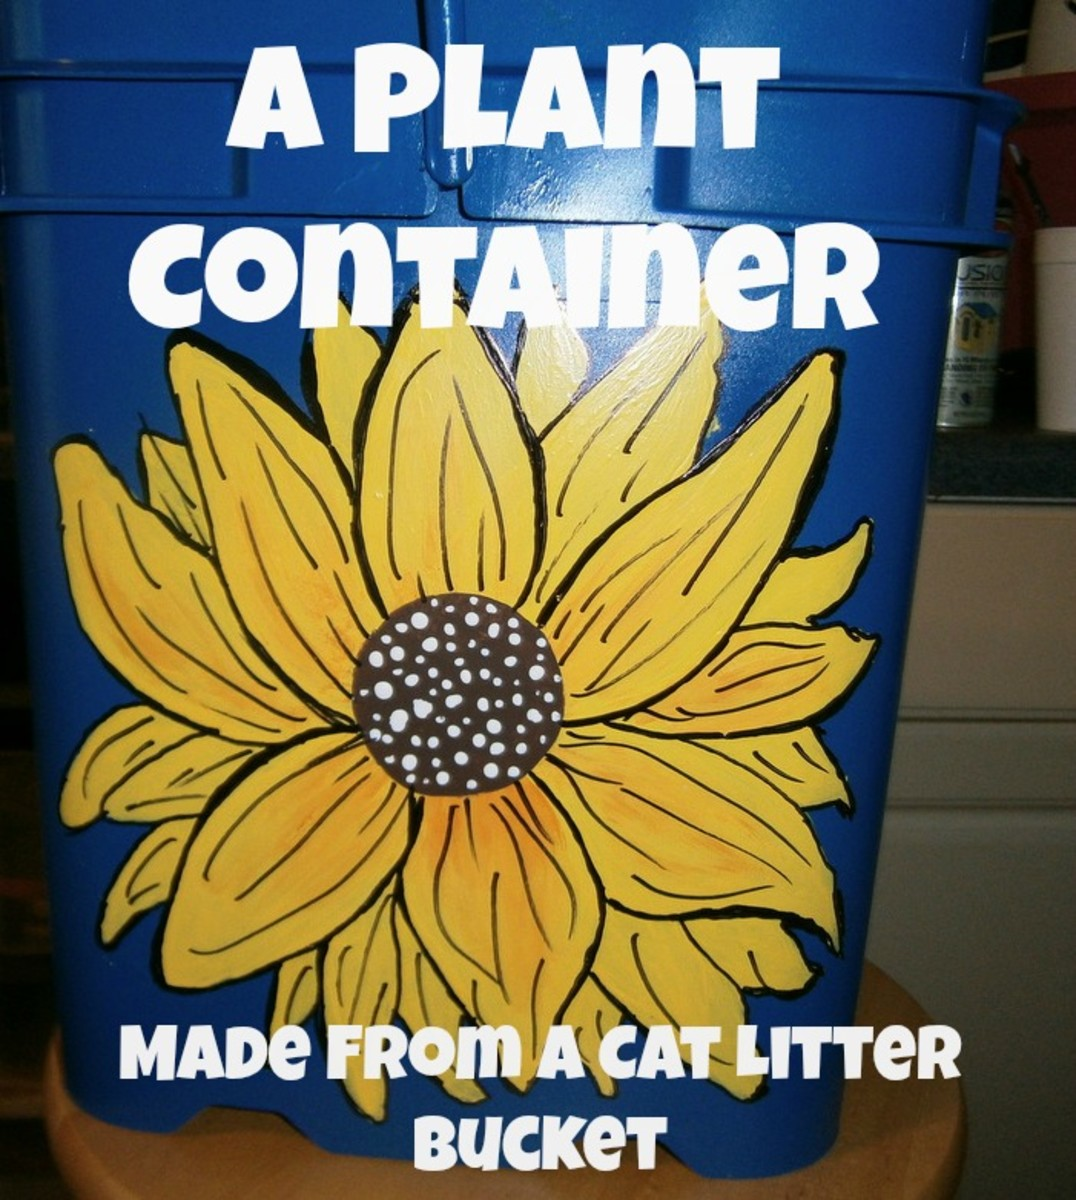 How To Make A Decorated Flower Pot From A Cat Litter Bucket; Instructions and Photos